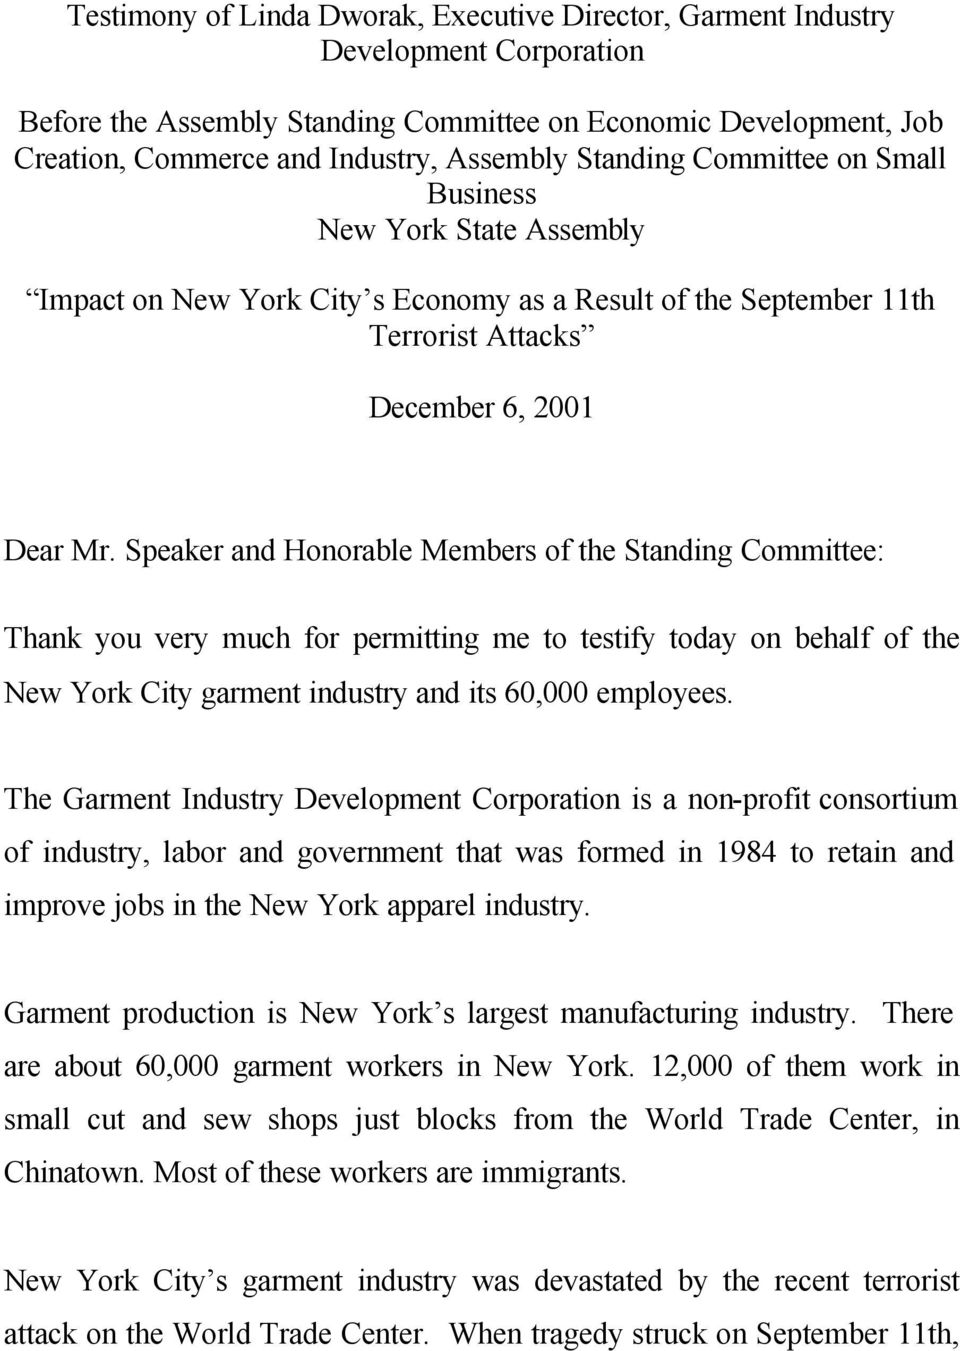 Speaker and Honorable Members of the Standing Committee: Thank you very much for permitting me to testify today on behalf of the New York City garment industry and its 60,000 employees.